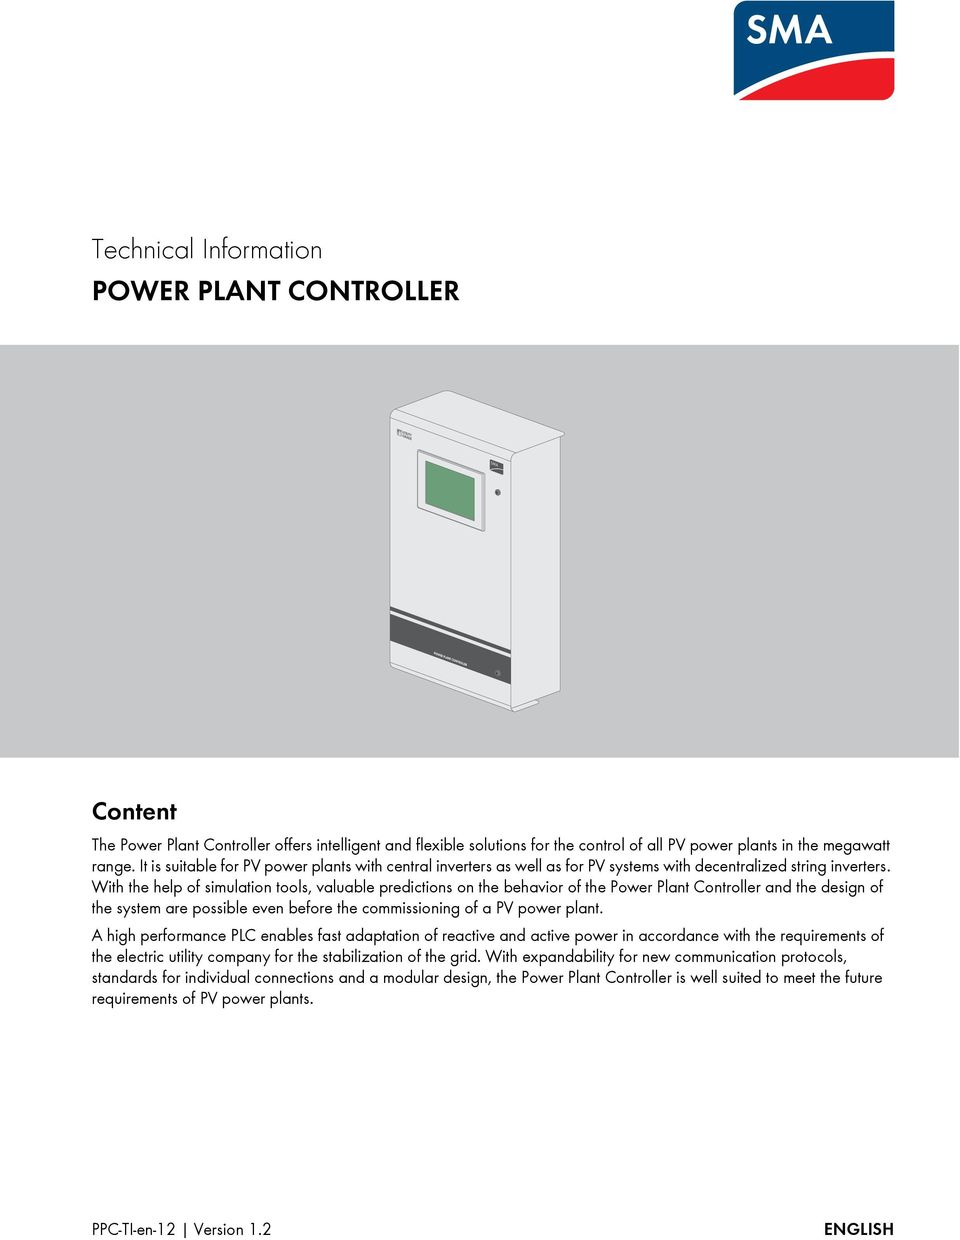 With the help of simulation tools, valuable predictions on the behavior of the Power Plant Controller and the design of the system are possible even before the commissioning of a PV power plant.